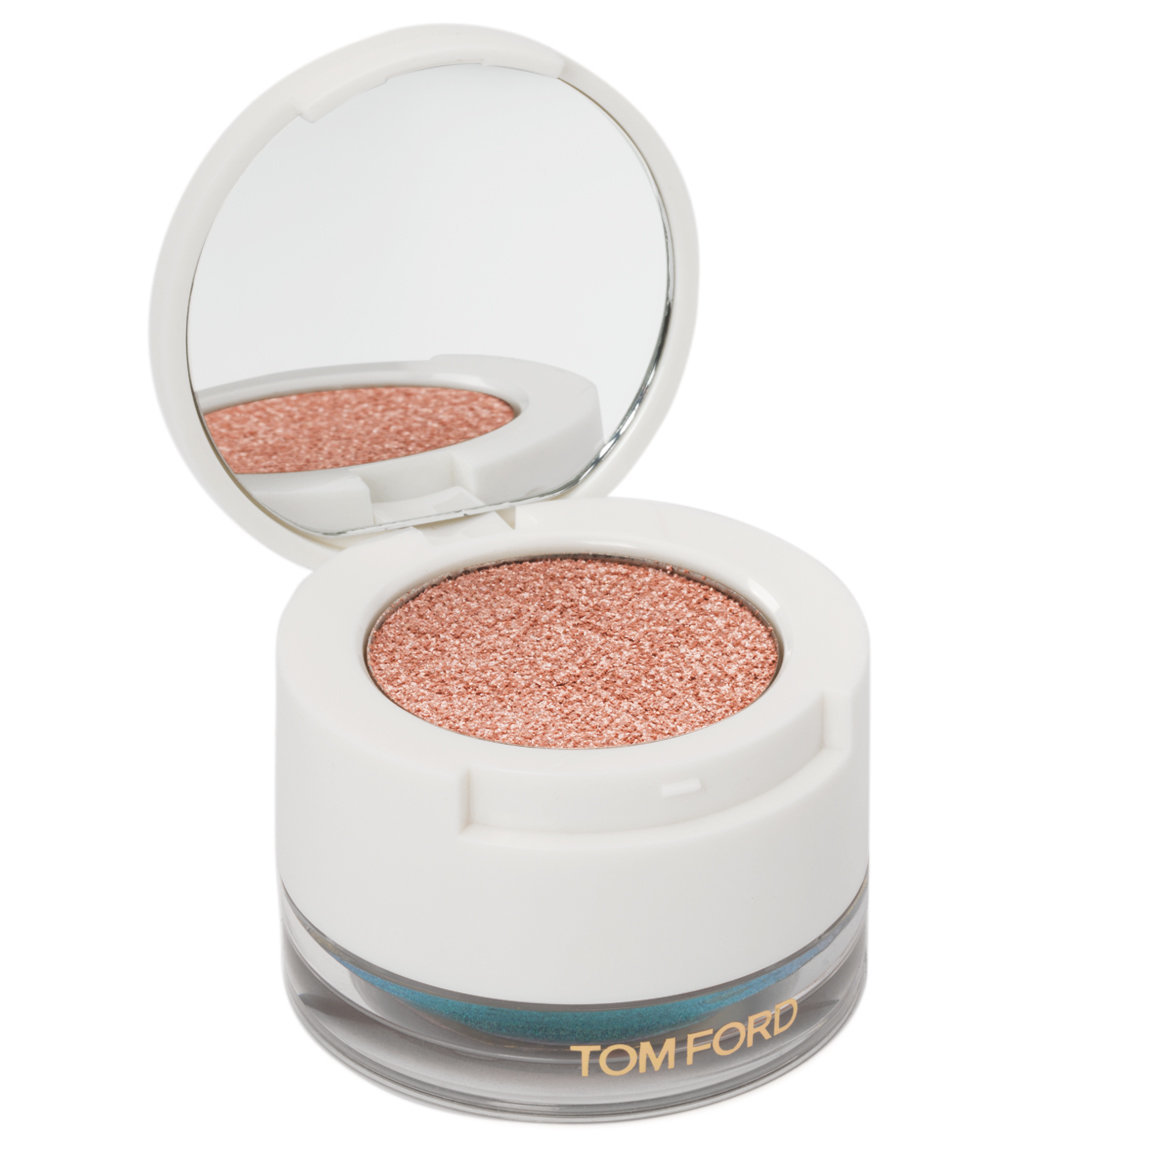 TOM FORD Cream and Powder Eye Color Azure Sun